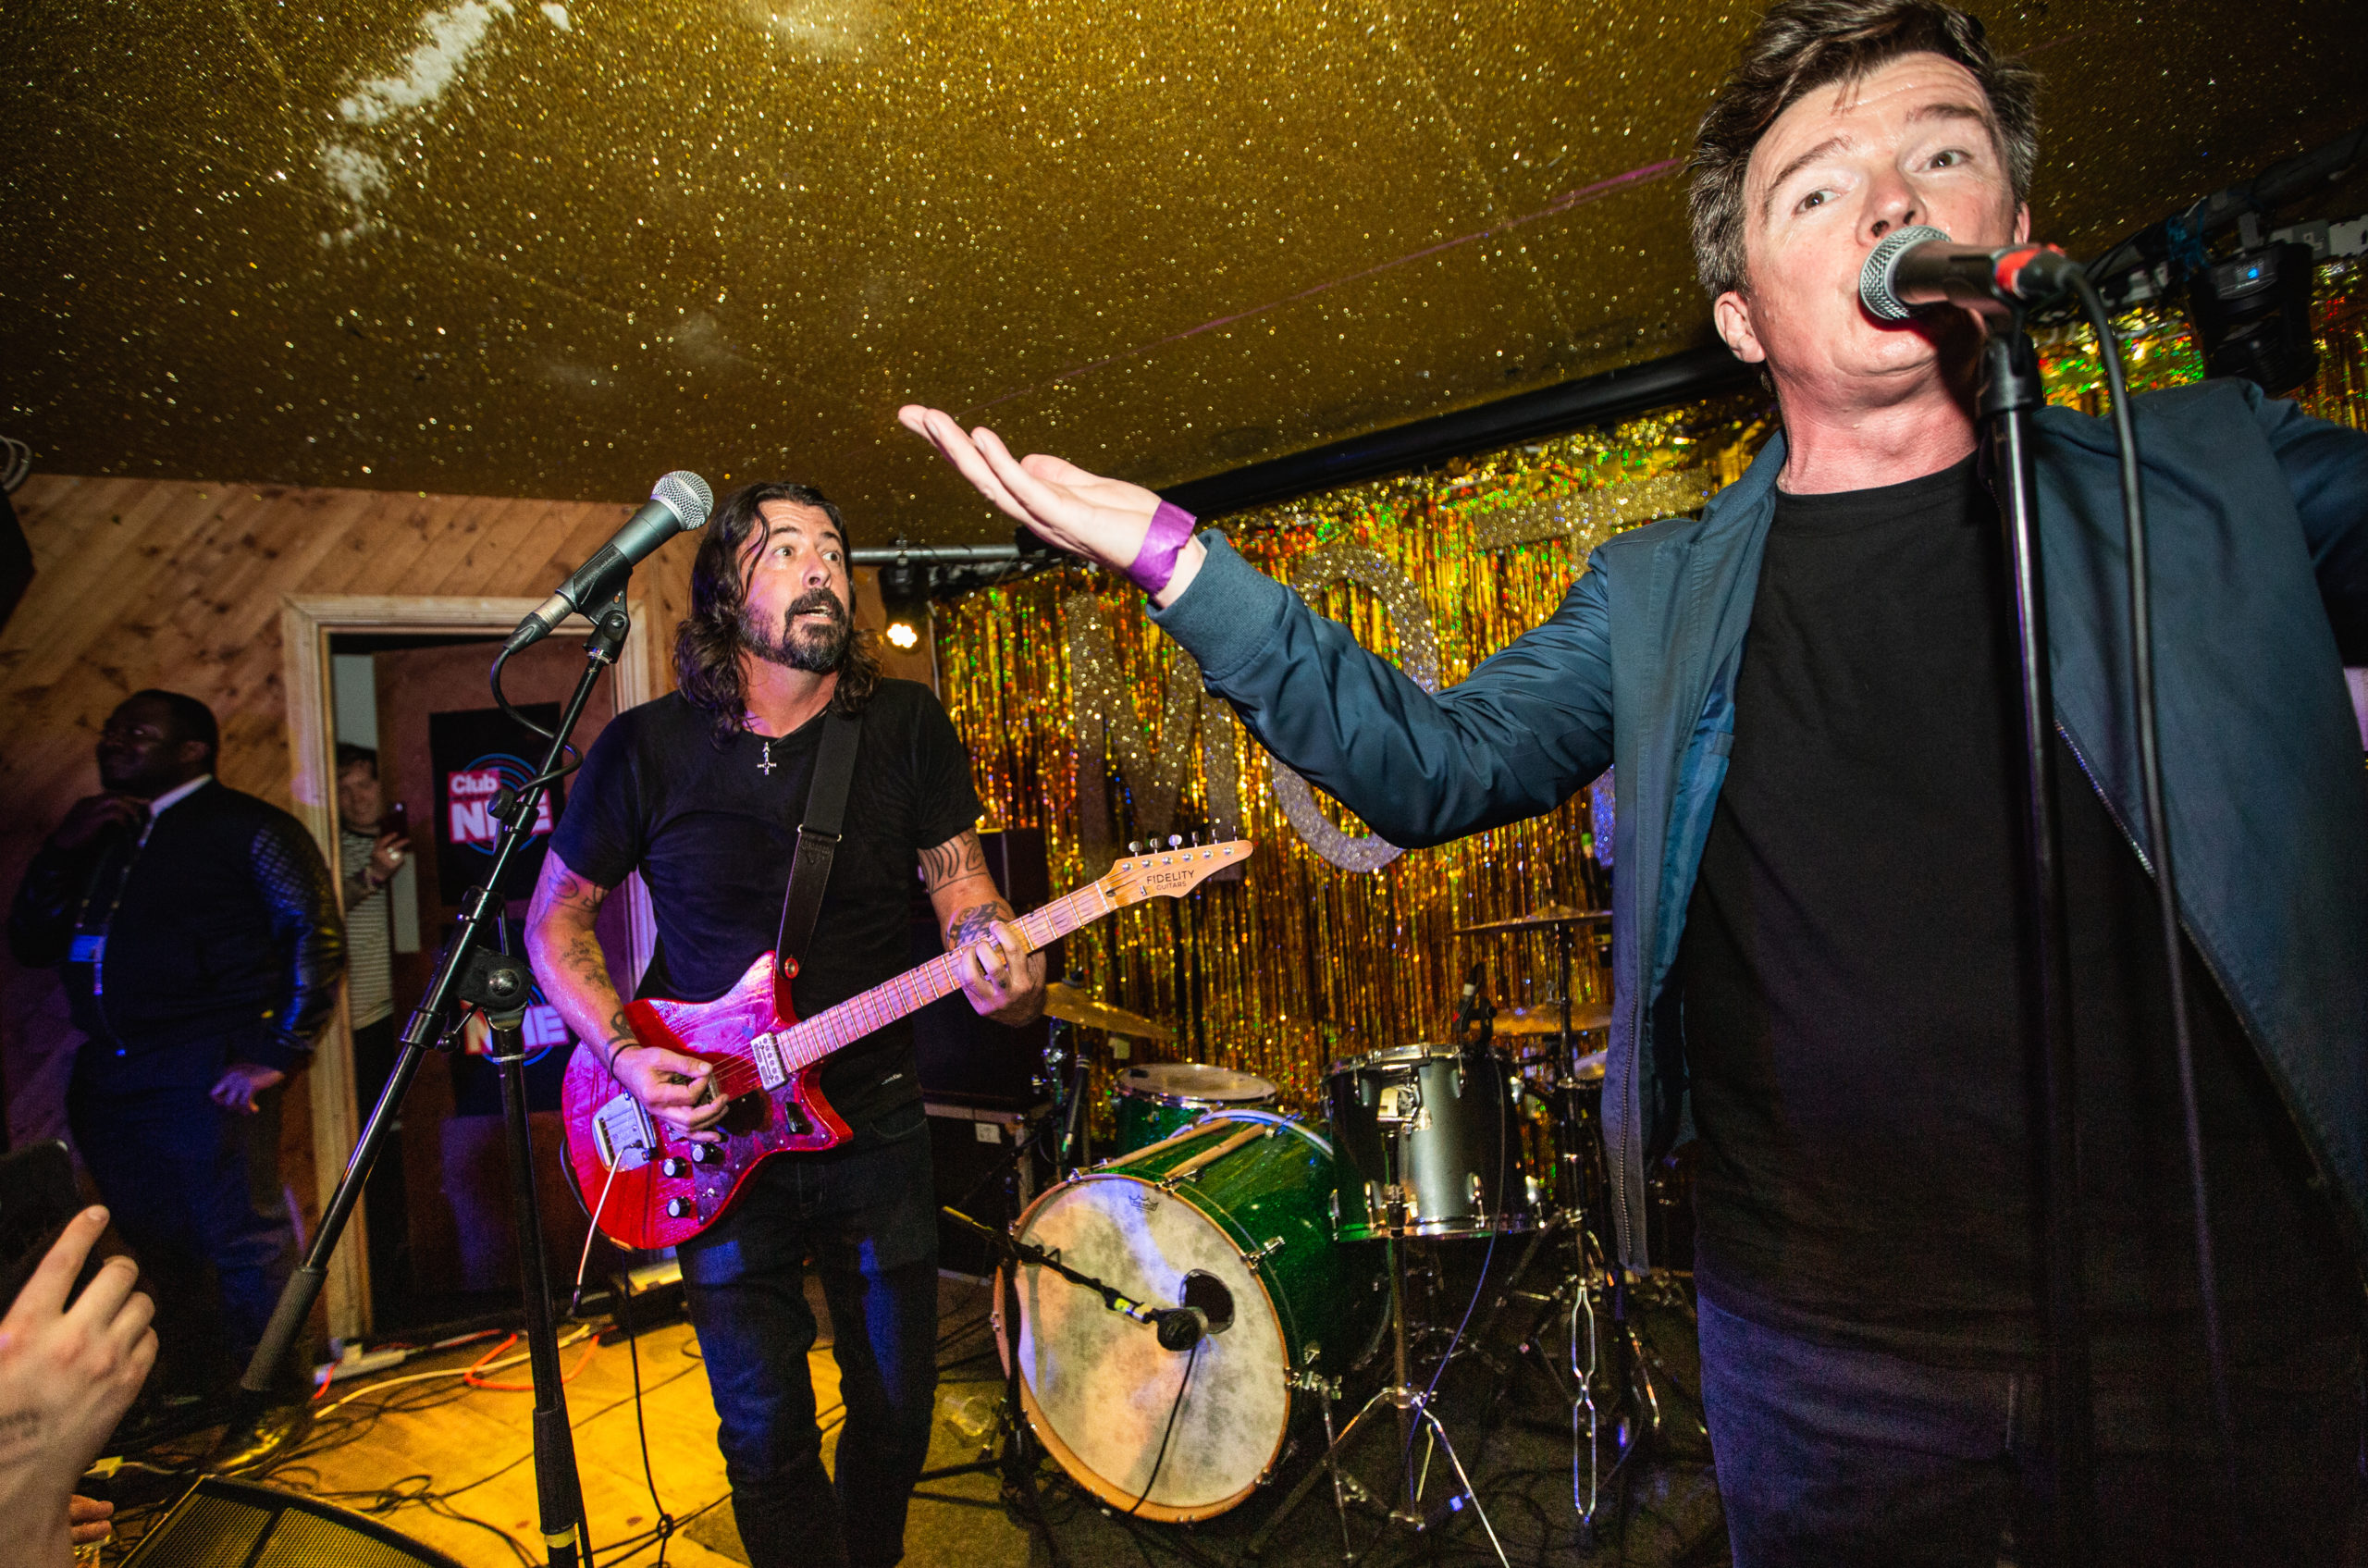 Rick Astley and Dave Grohl at Club NME